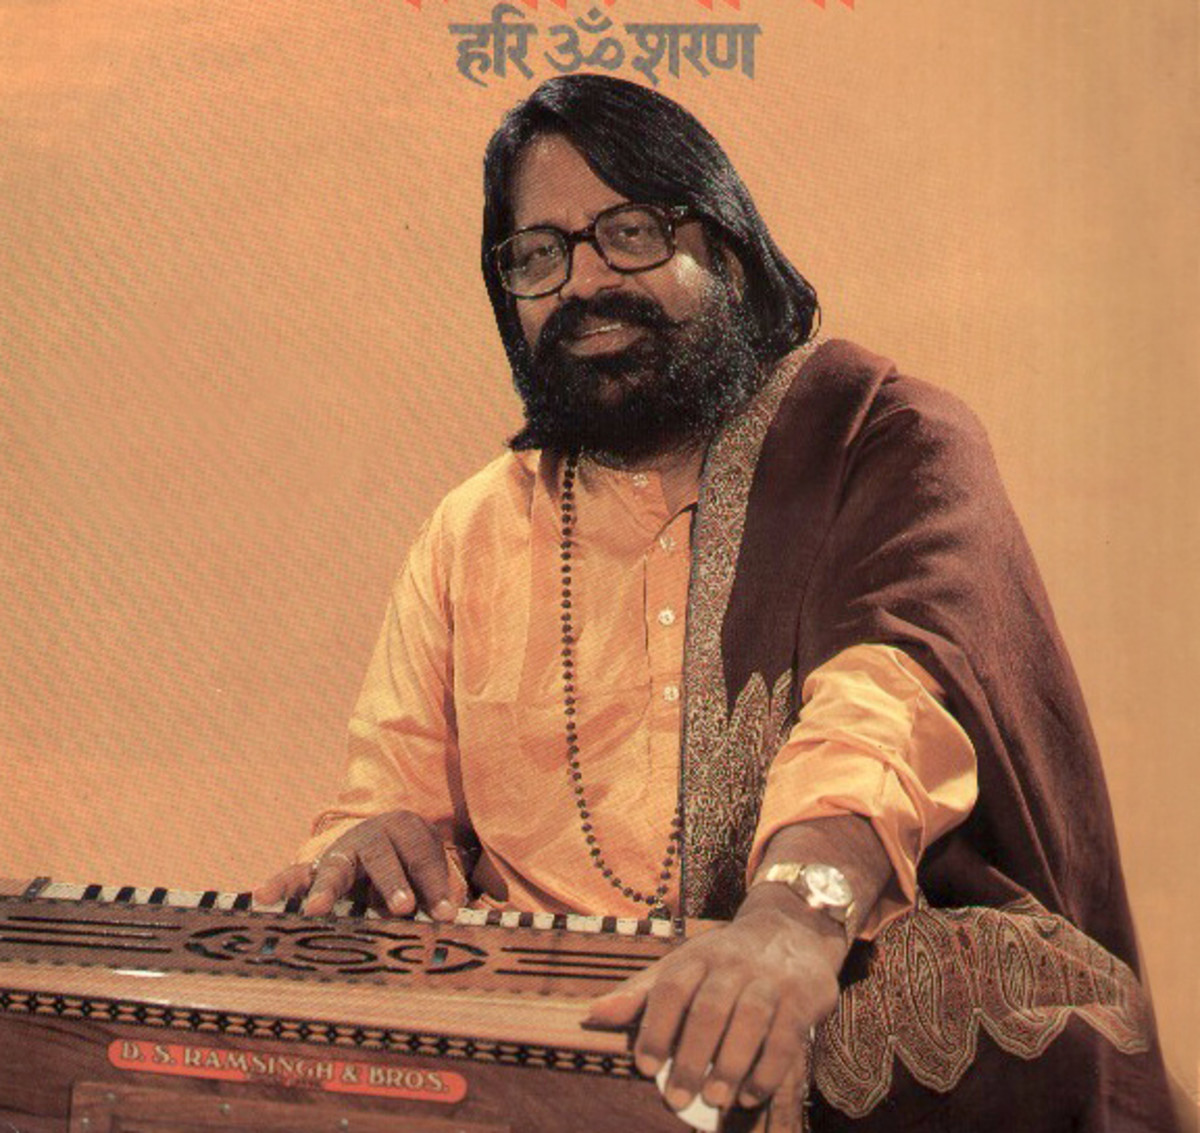 The legendary Hari Om Sharan with his favorite friend - the harmonium!